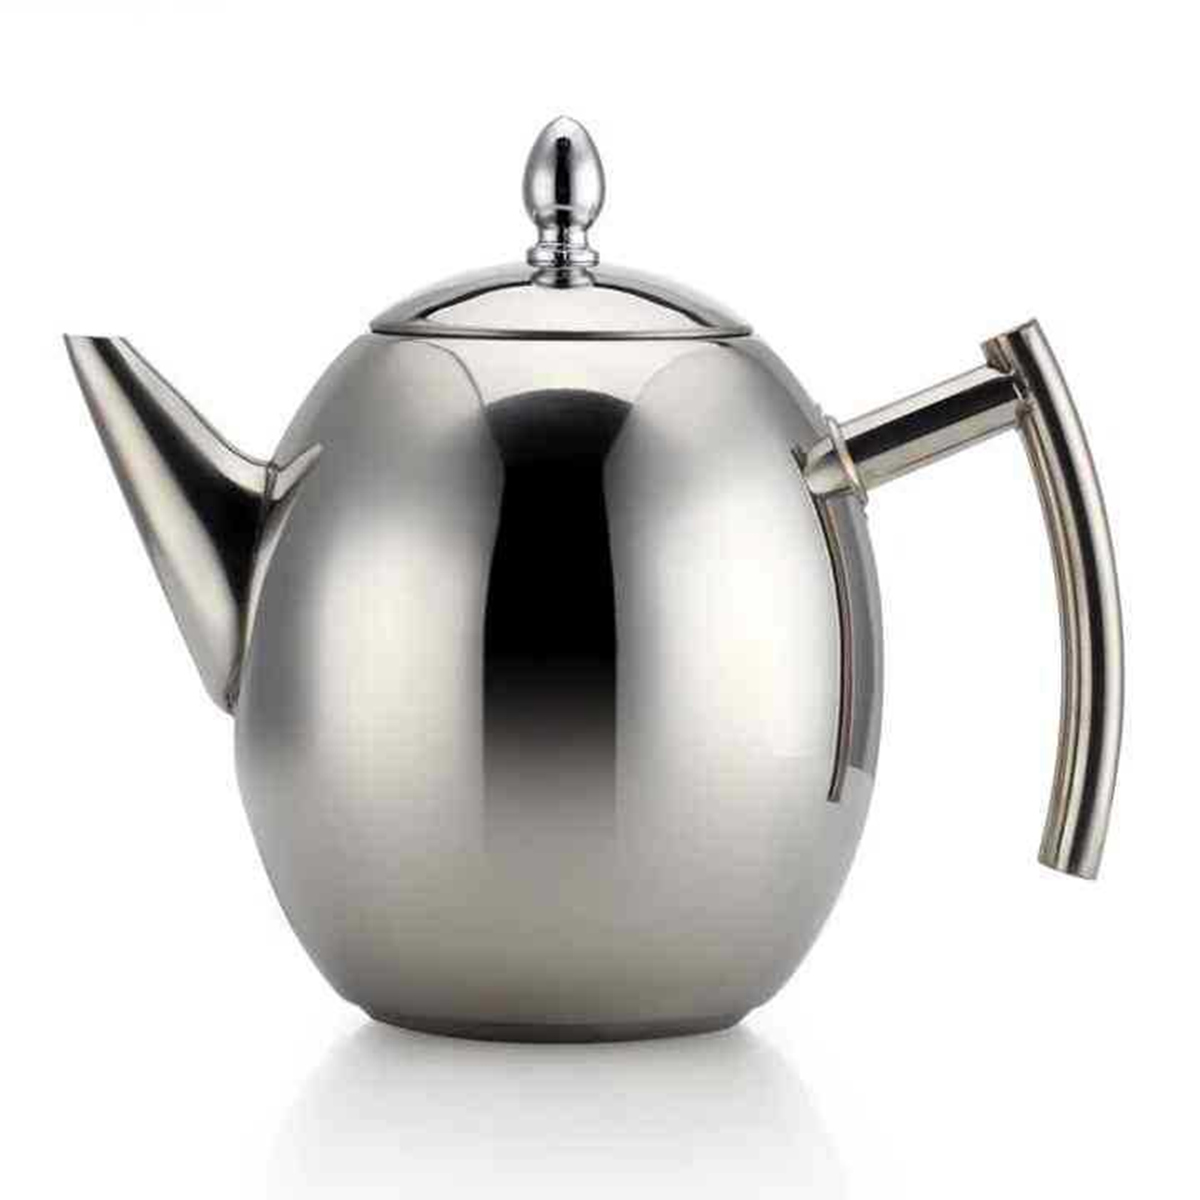 1L 1.5L Stainless Steel Coffee Pour Over Kettle Drip Tea Pot W/ Filter Strainer Coffee Tea Sets